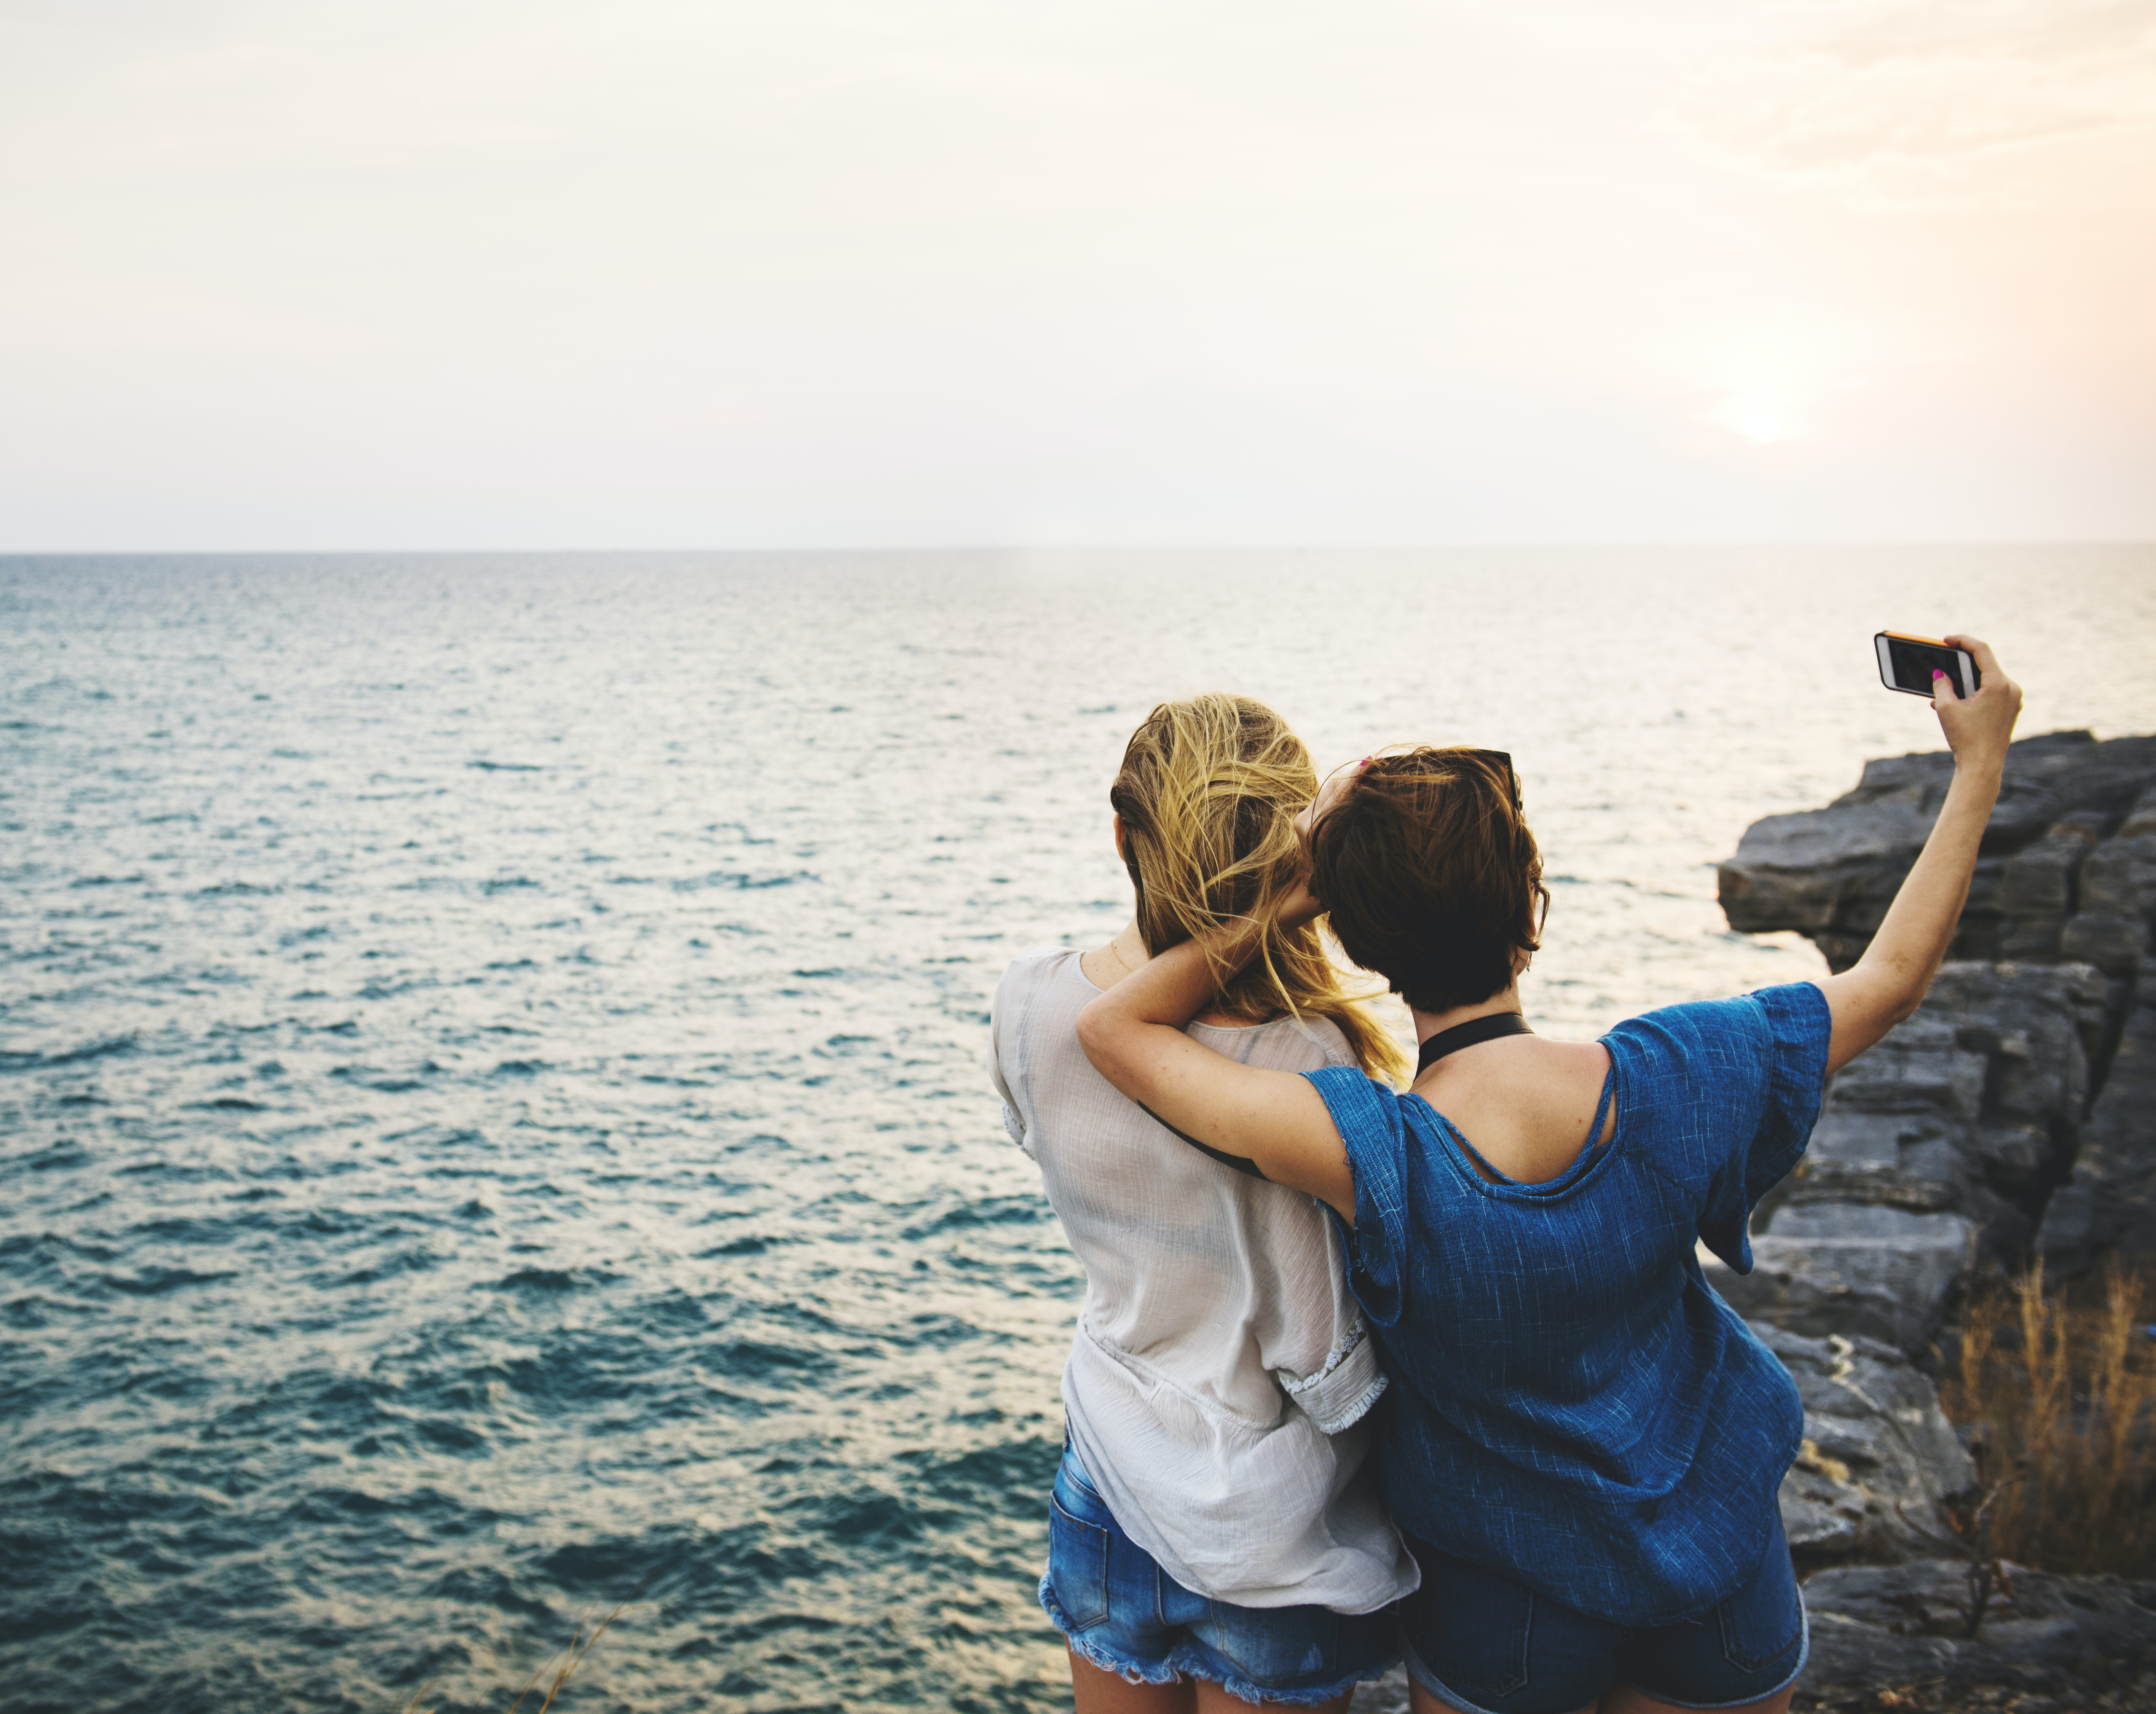 two woman standing near ocean during daytime